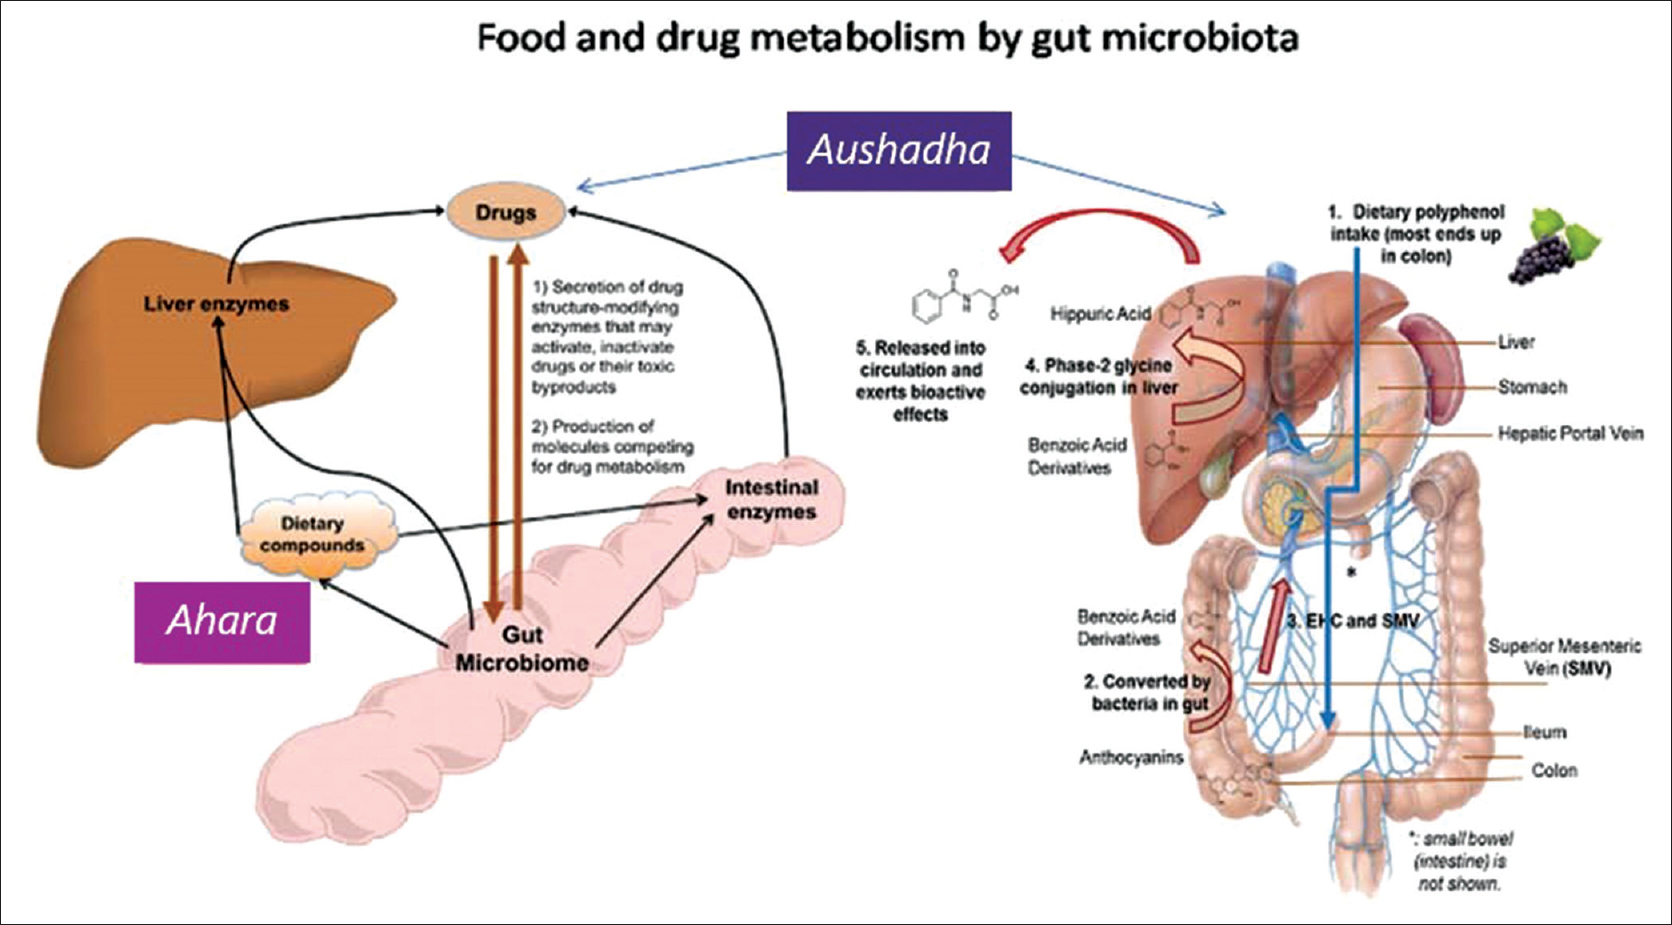 Figure 1: Overview of gut microbiota functions in food and drug metabolism